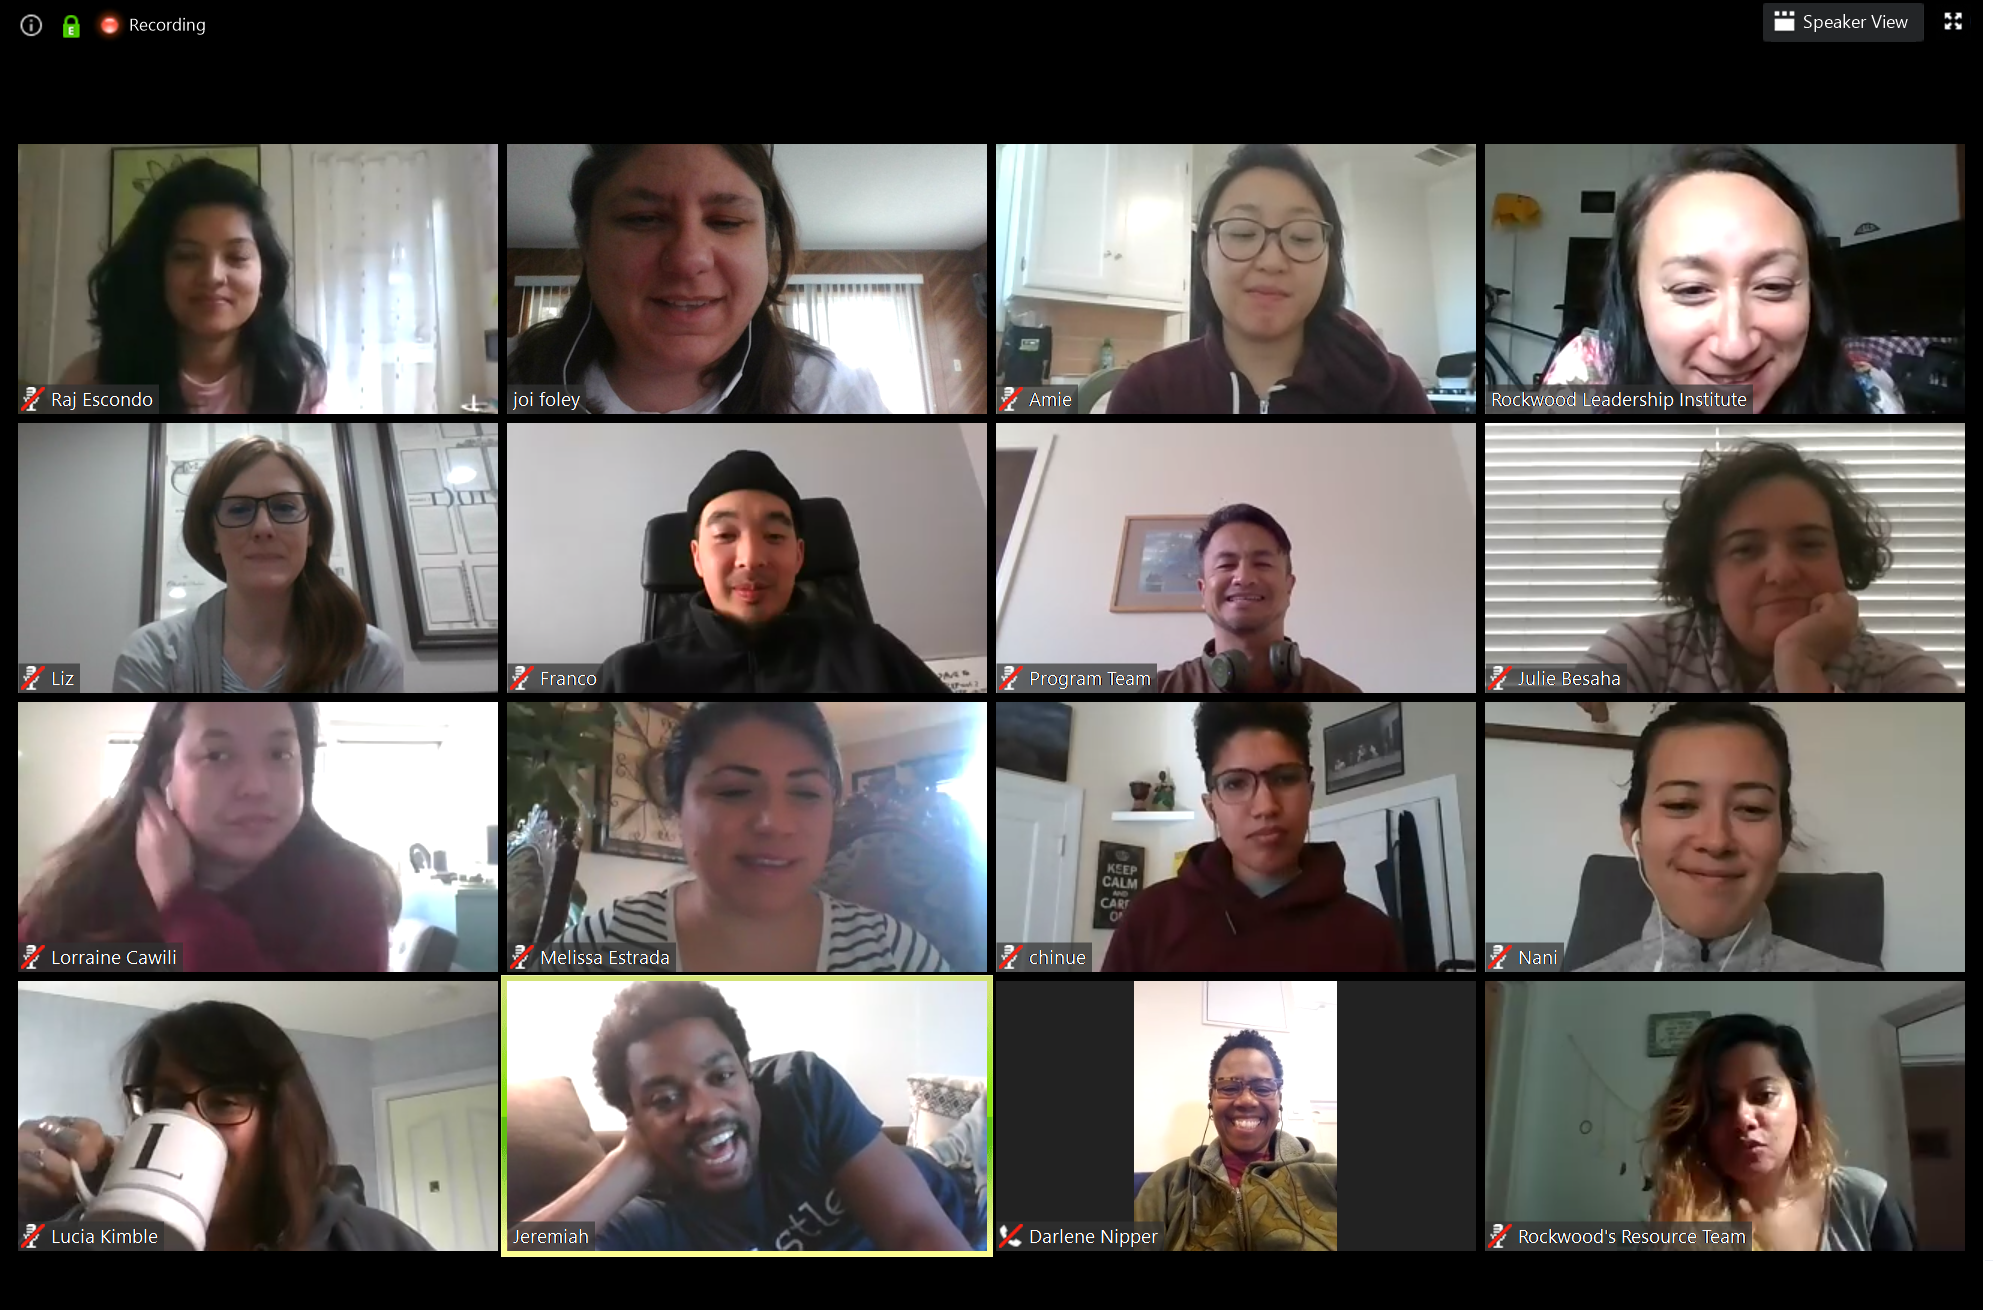 A mixed group of 16 people, together in a video chat.